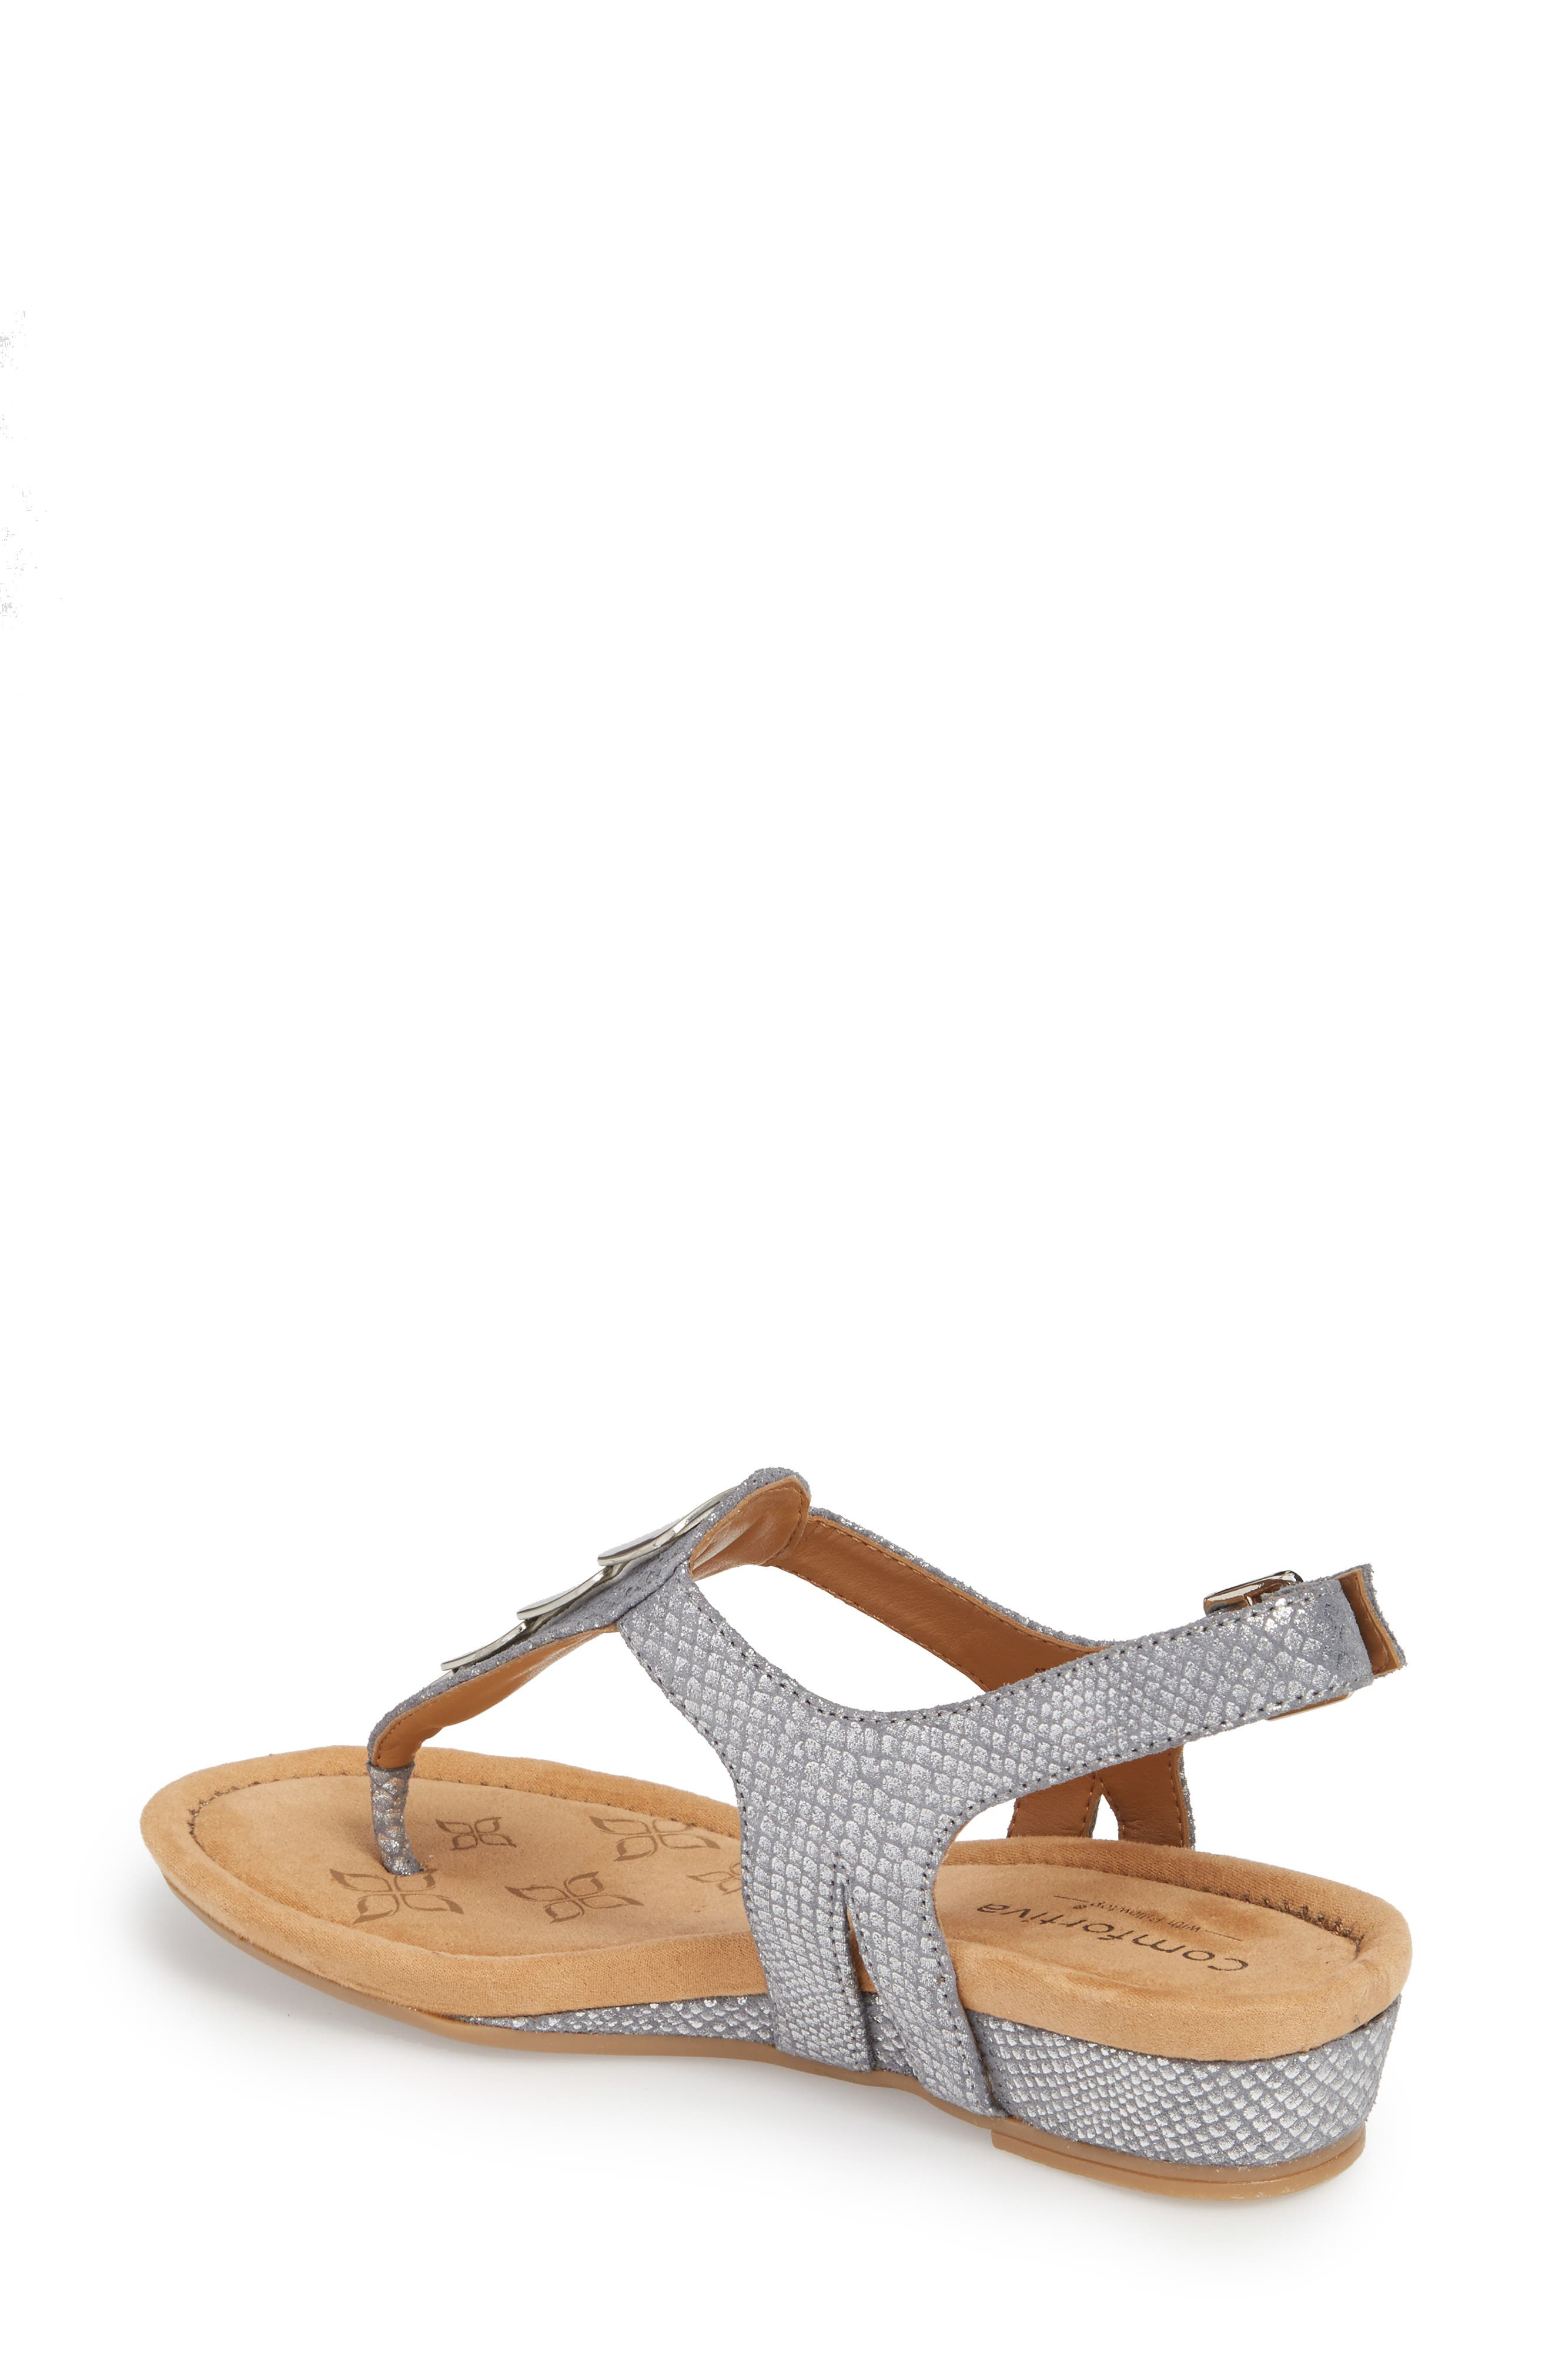 Summit Wedge Sandal,                             Alternate thumbnail 2, color,                             PEWTER SUEDE